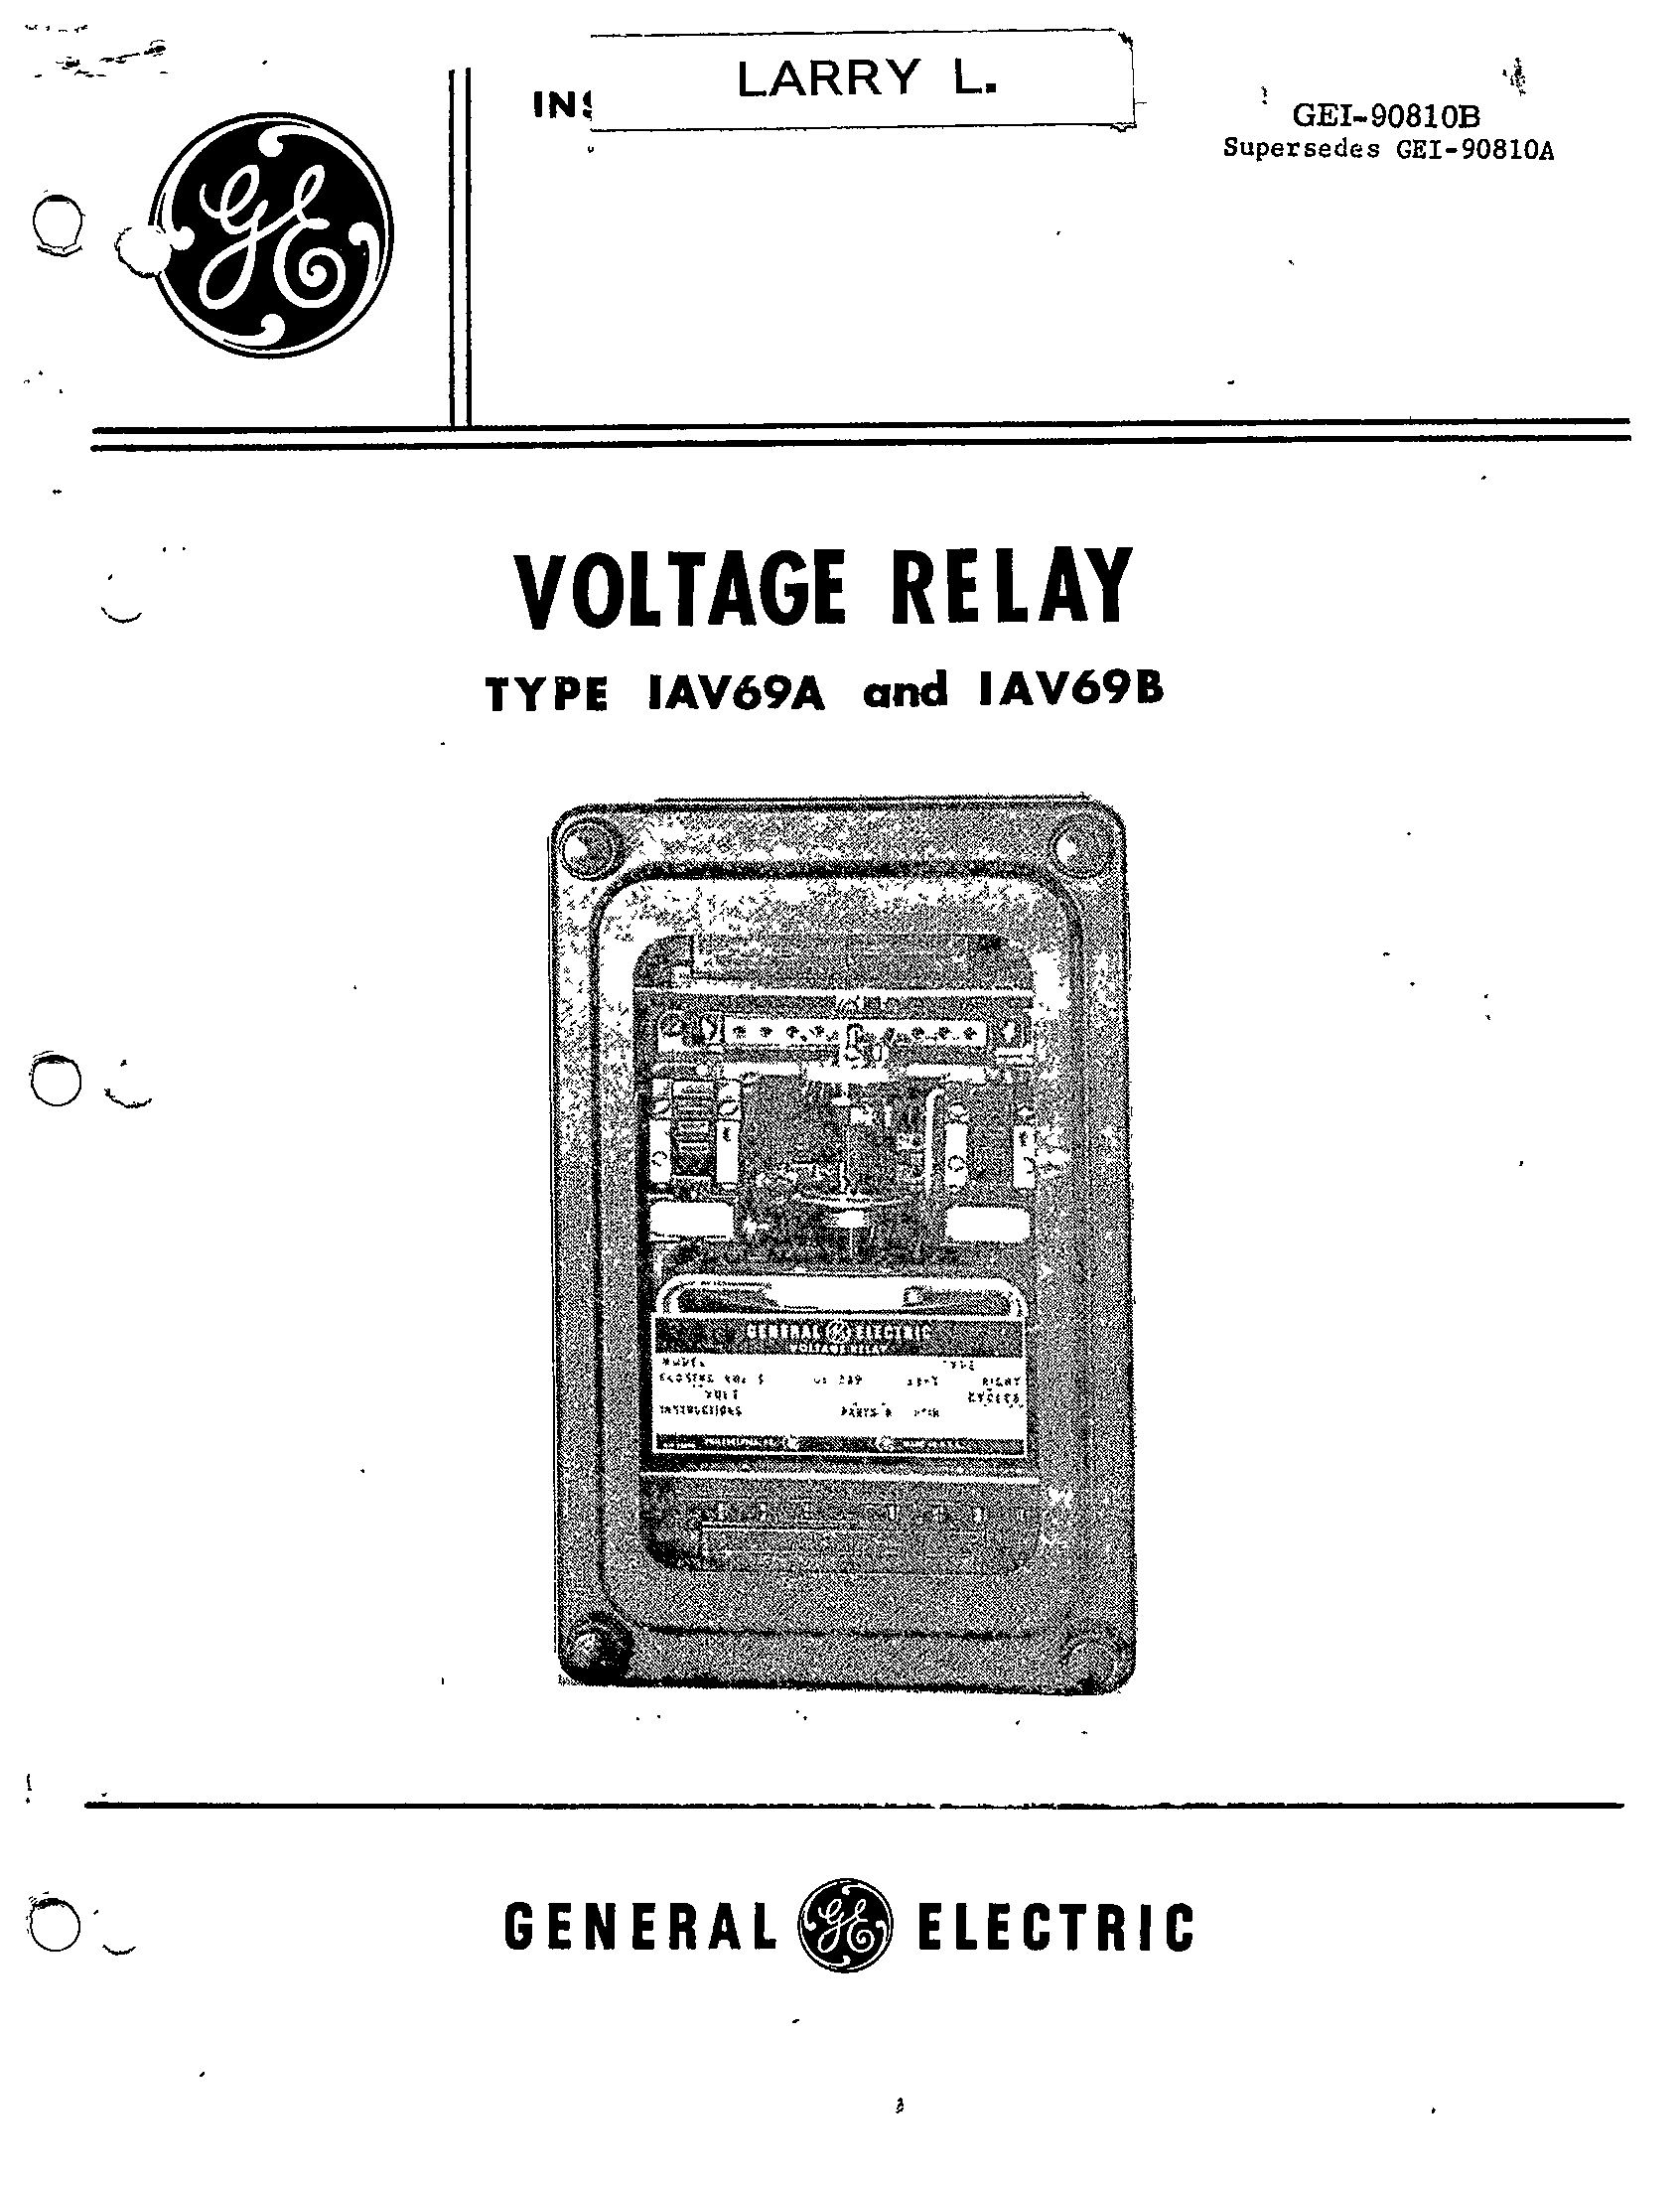 GEI-90810B VOLTAGE RELAY TYPE IAV69A AND IAV69B MANUAL